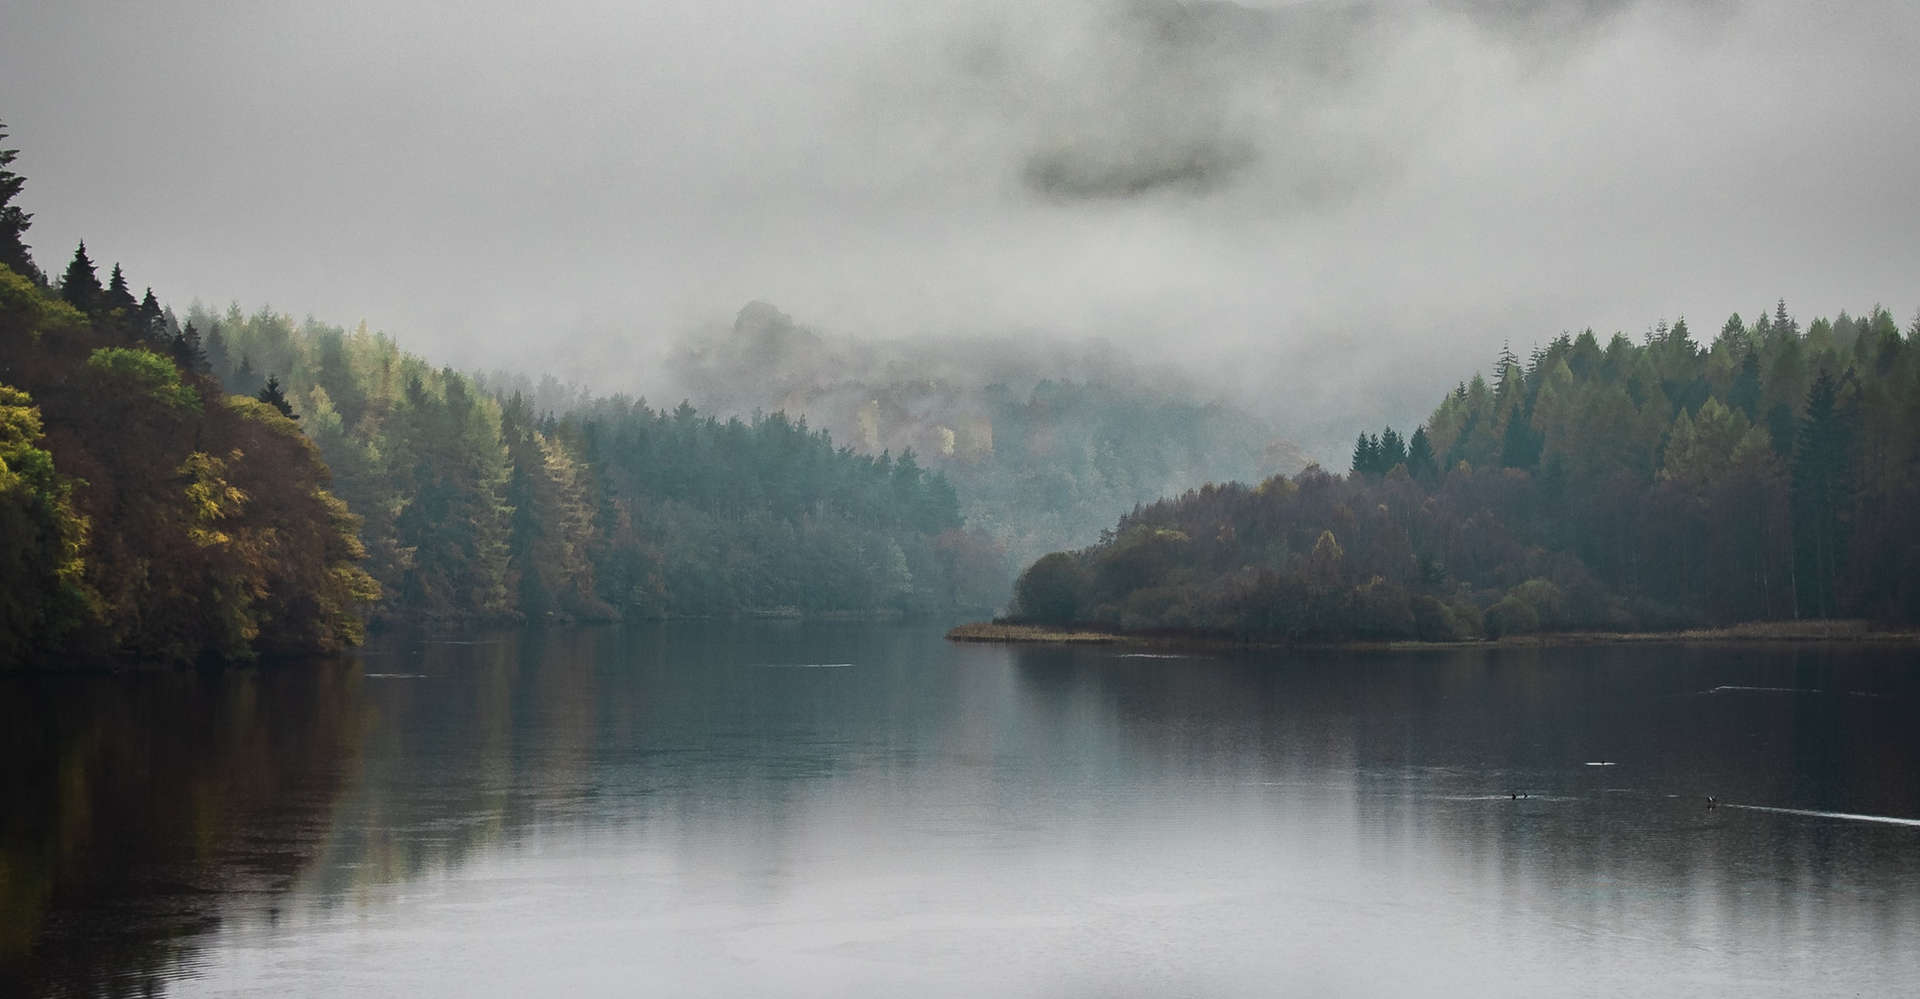 Misty Loch in Perthshire scotland with trees and calm water